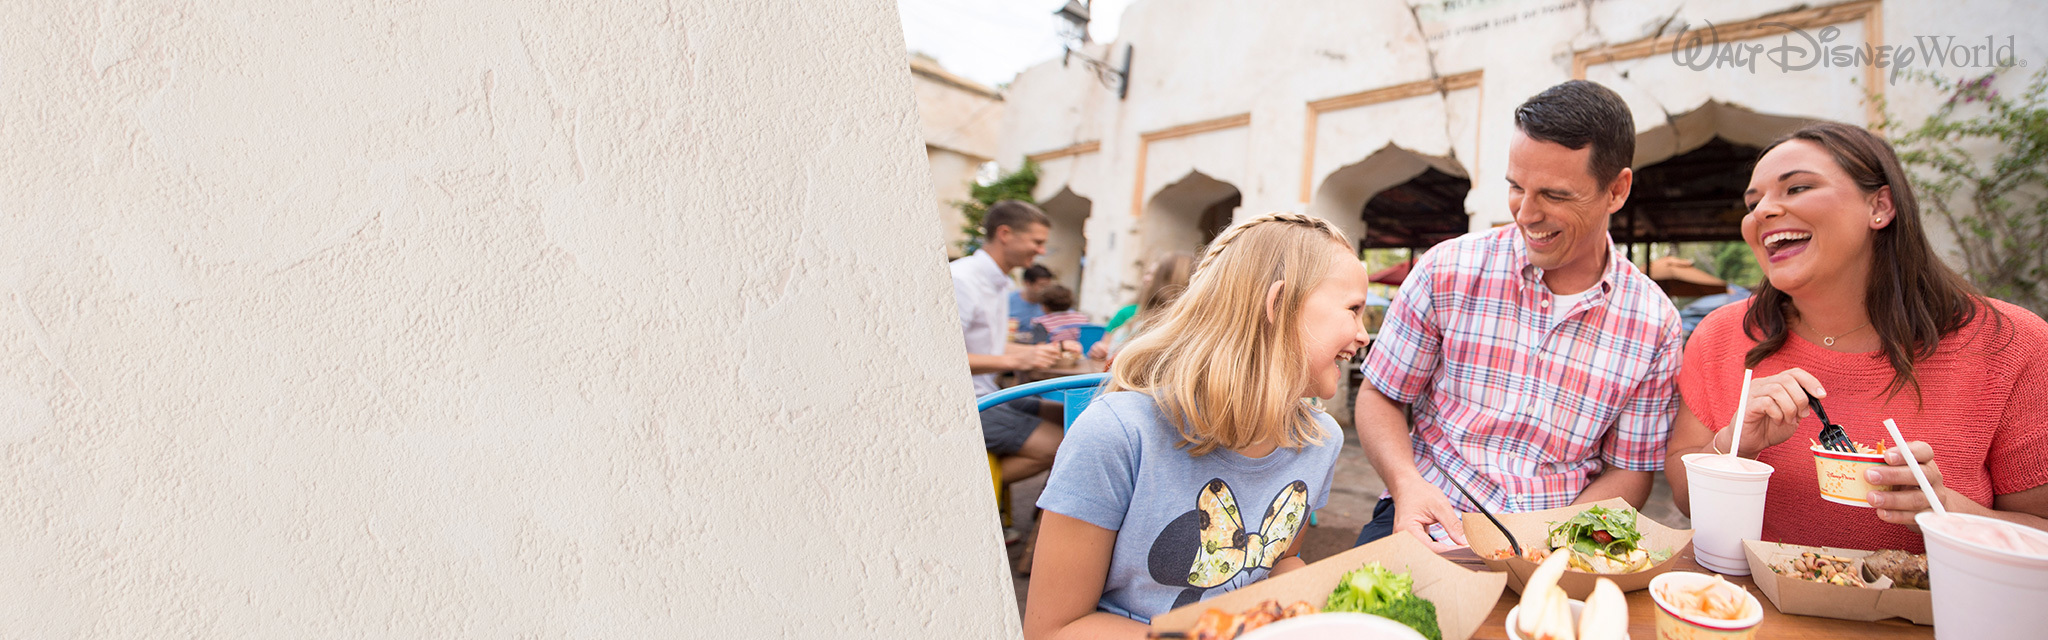 Disney Parks - WDW | FY17 Domestic Broad Summer Free Meal Offer - Hero